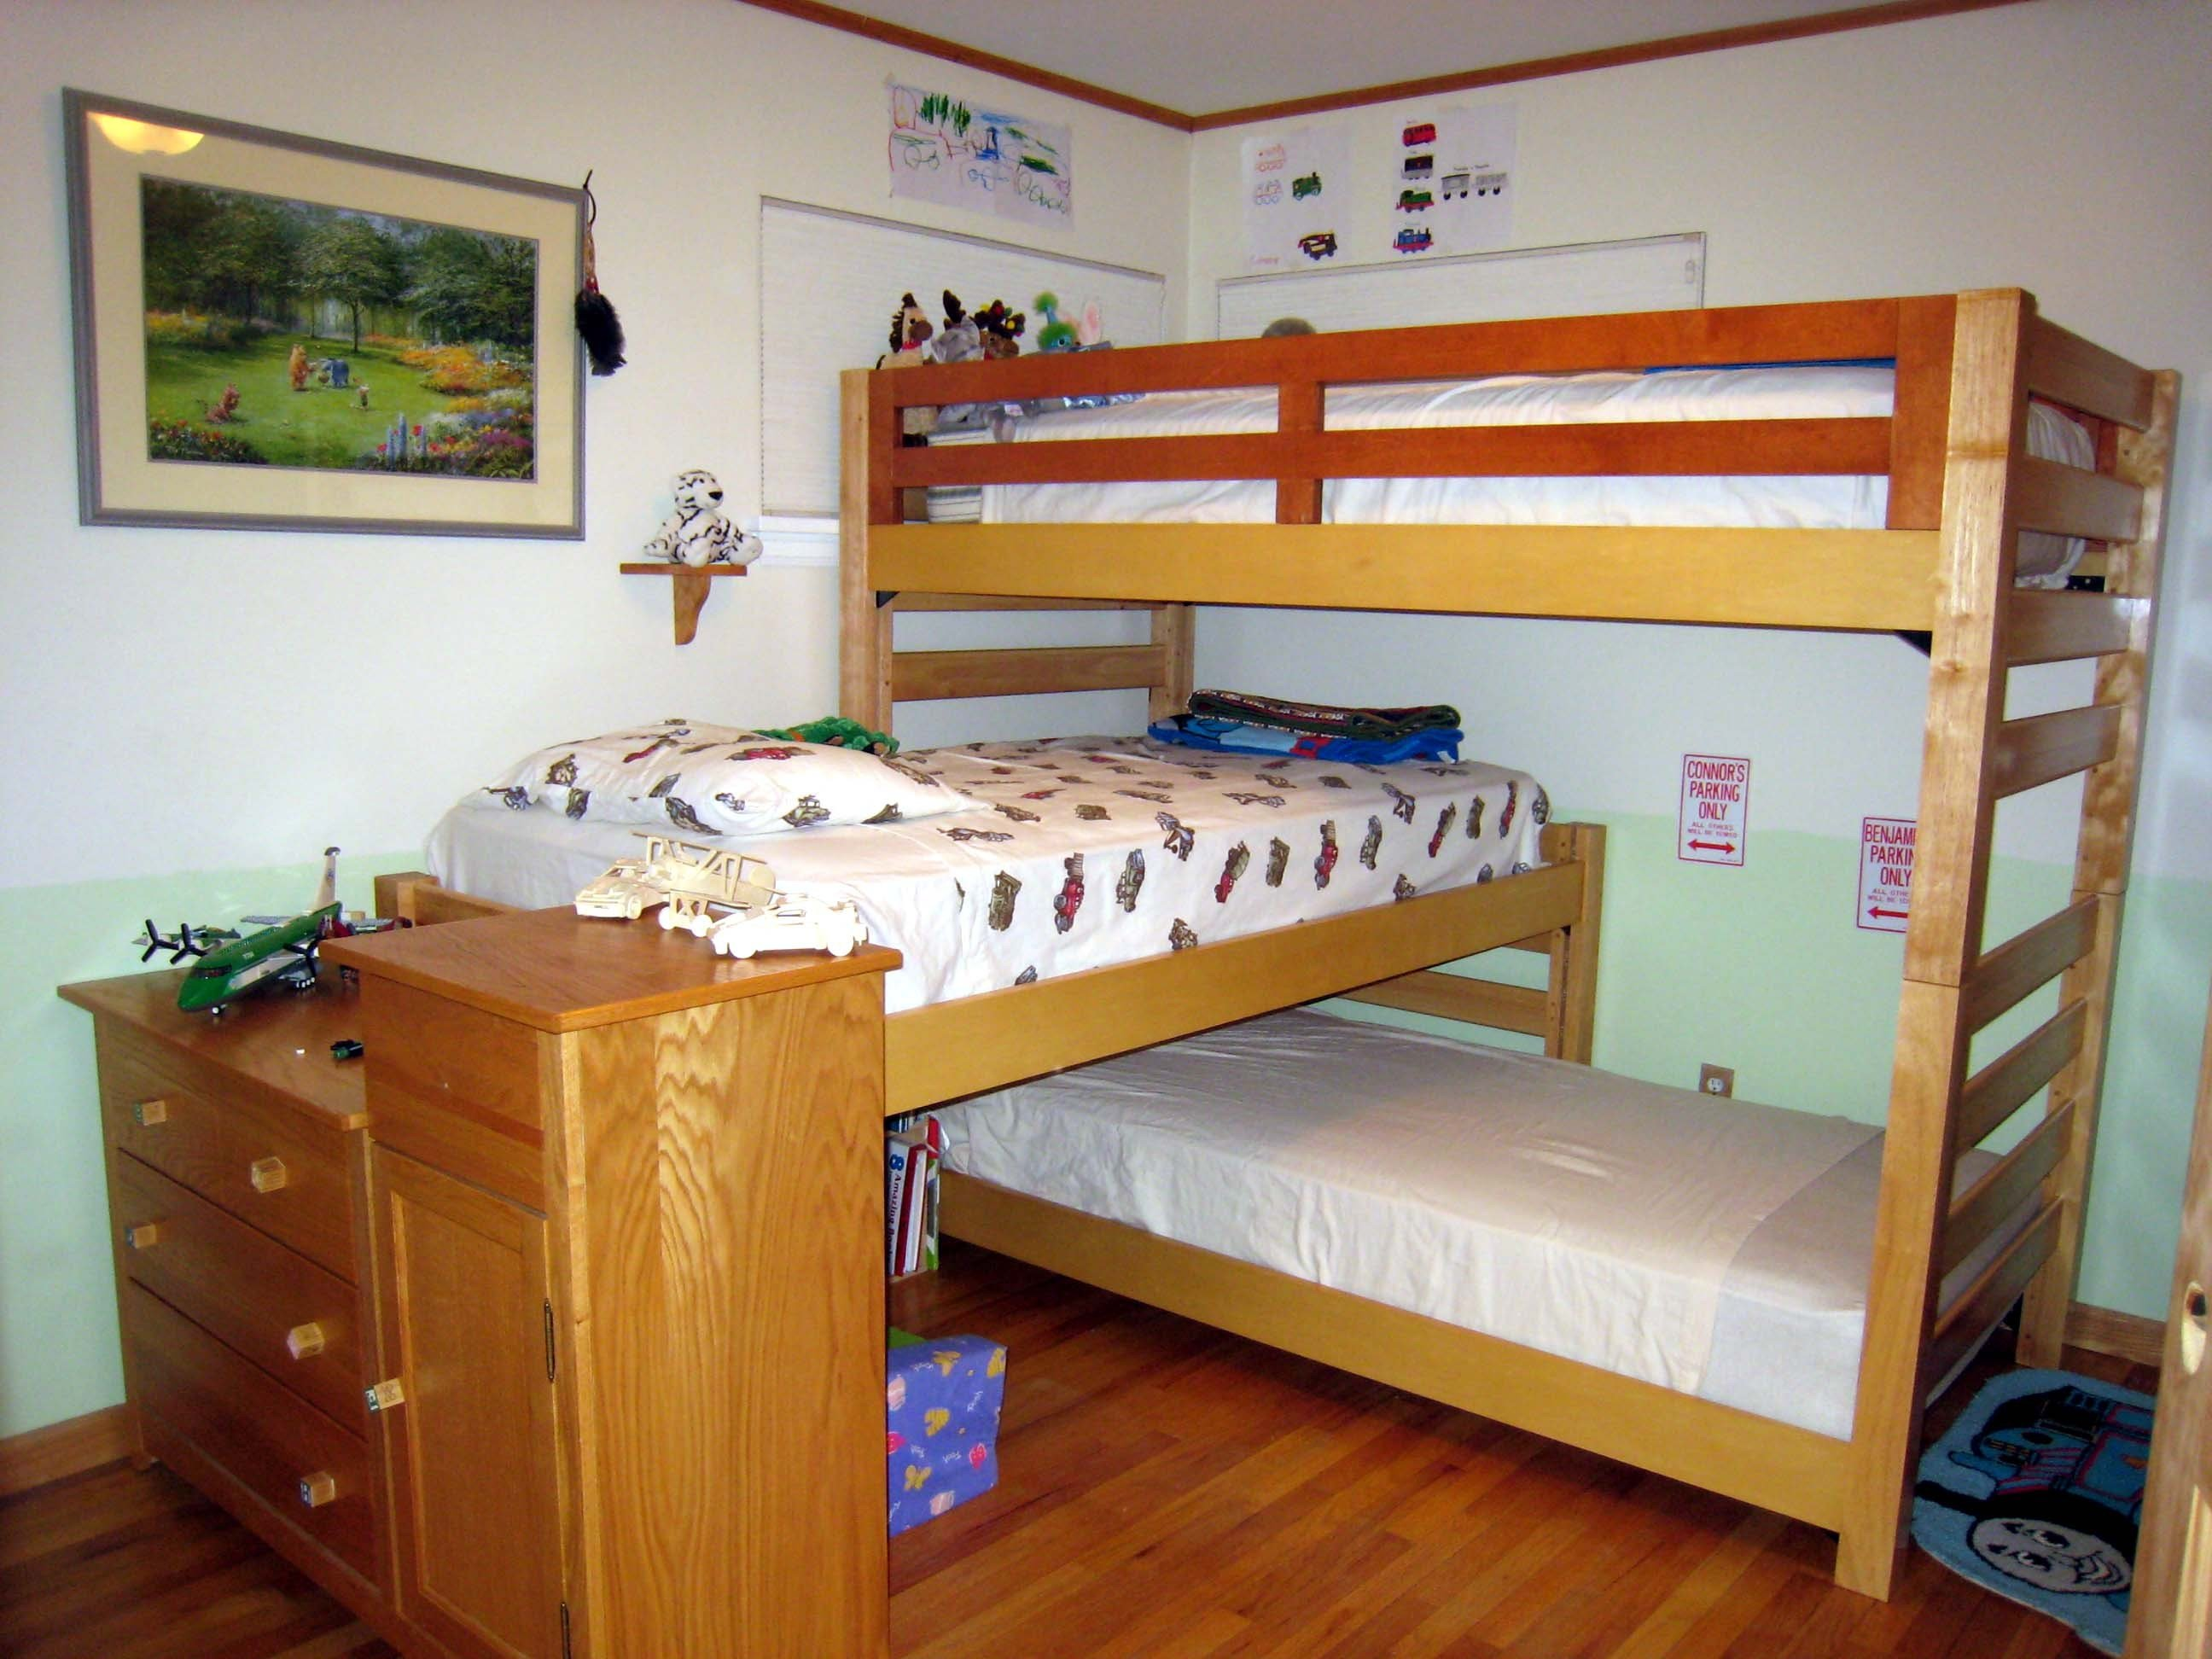 Best Nfl Office Phone Number Bedroom Design Football Furniture With Pictures